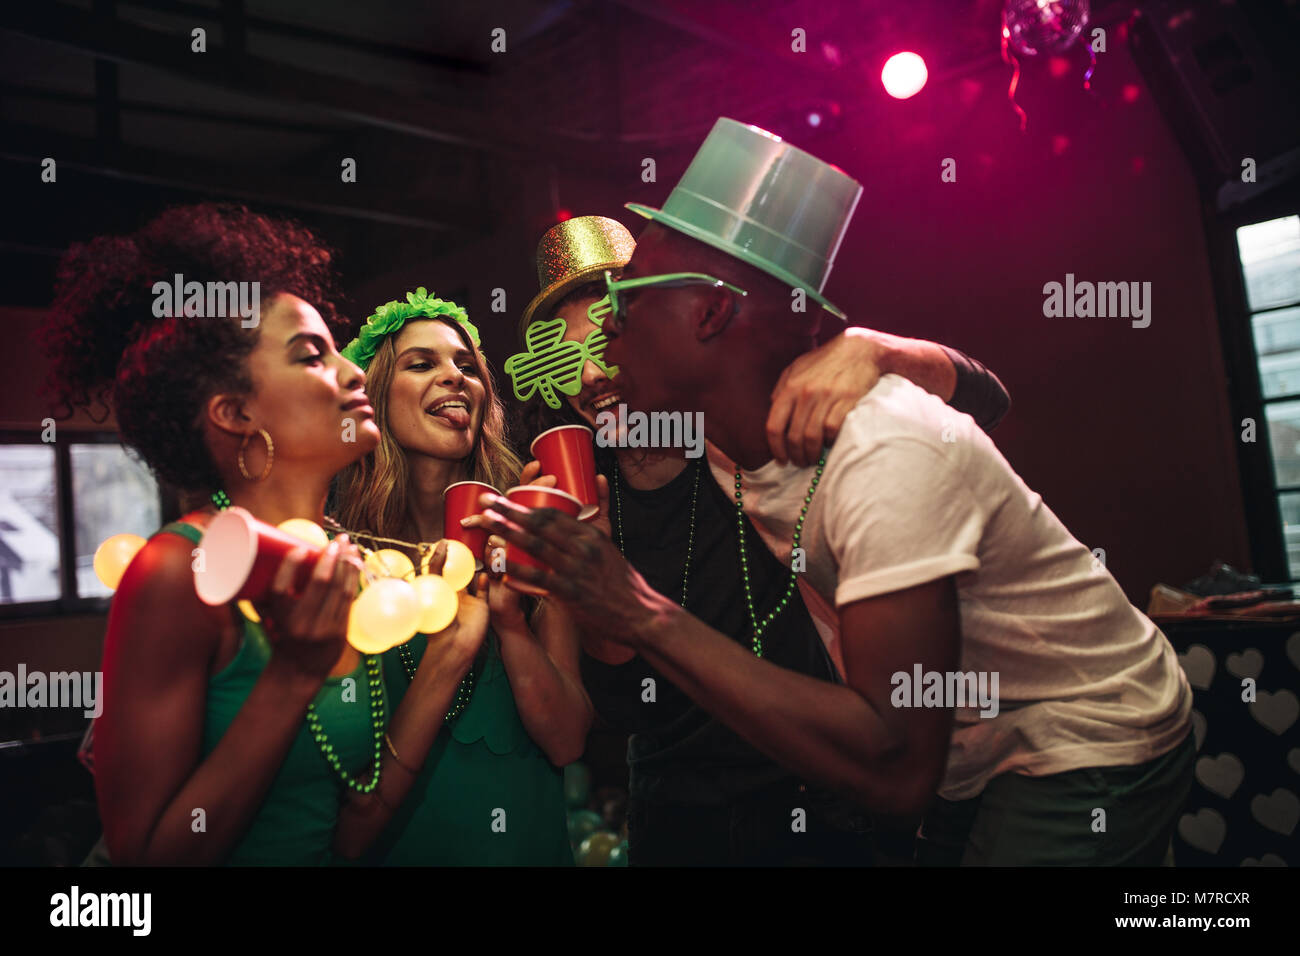 Group of cheerful friends having fun at bar. Multi-ethnic men and women partying and dancing at night club. Celebrating - Stock Image